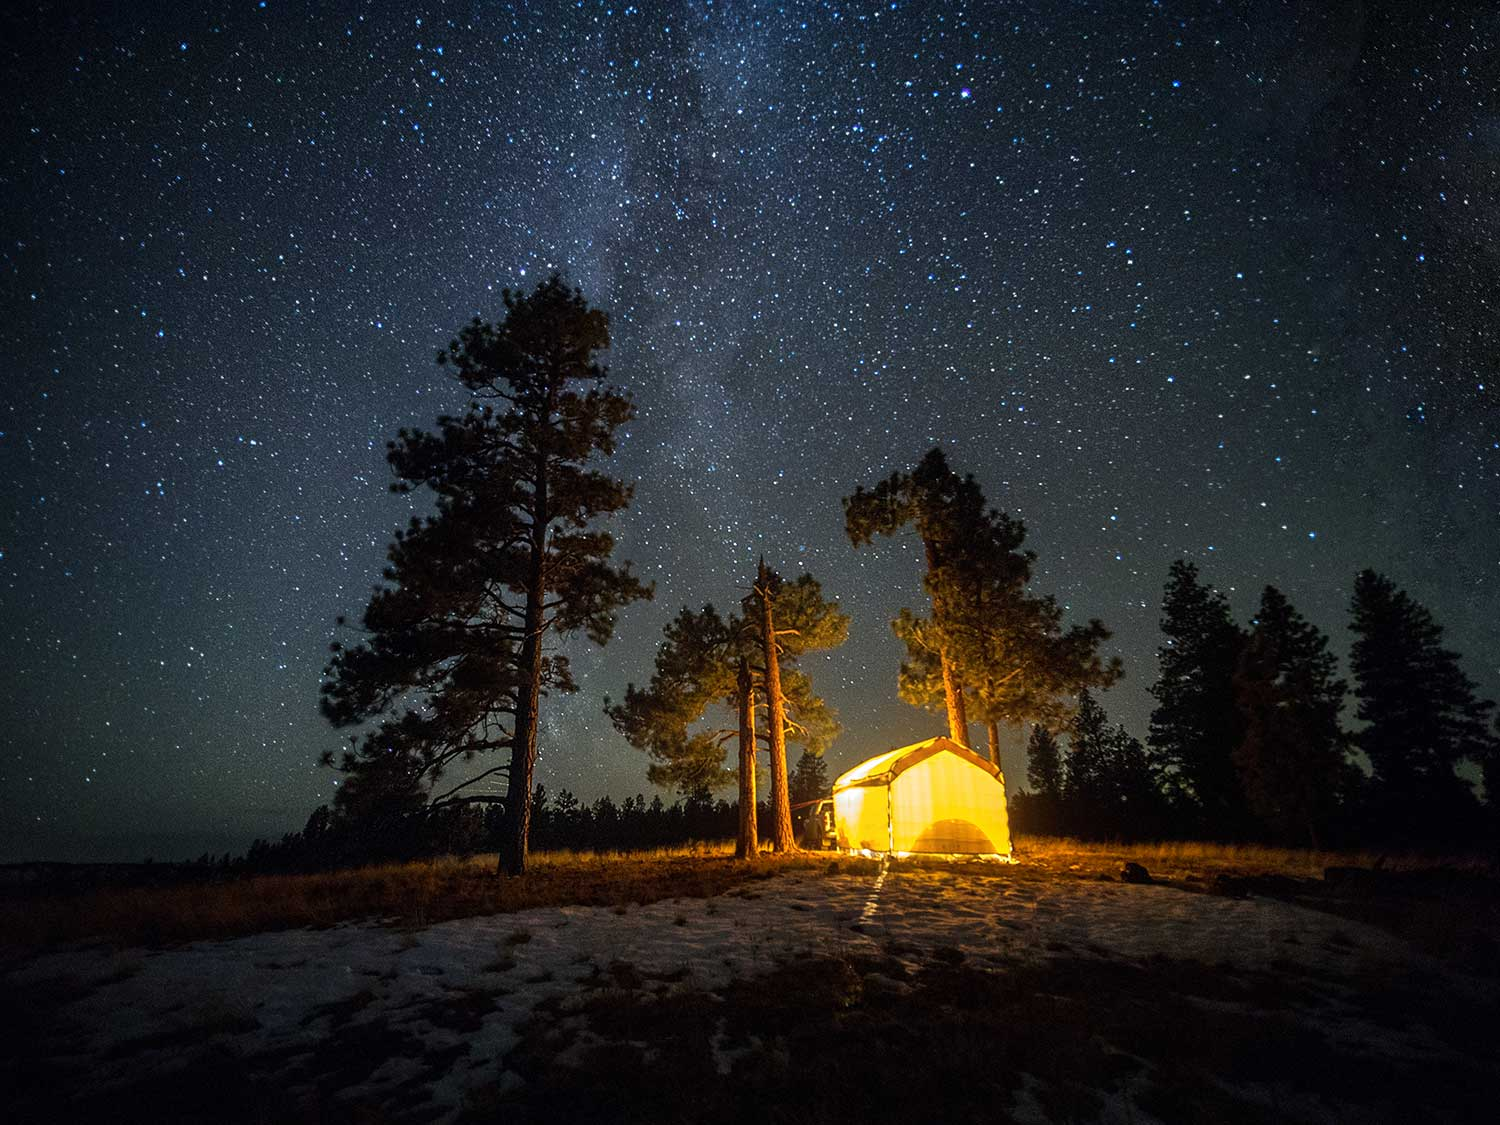 Camp Under the Milky Way, Available for  Purchase .